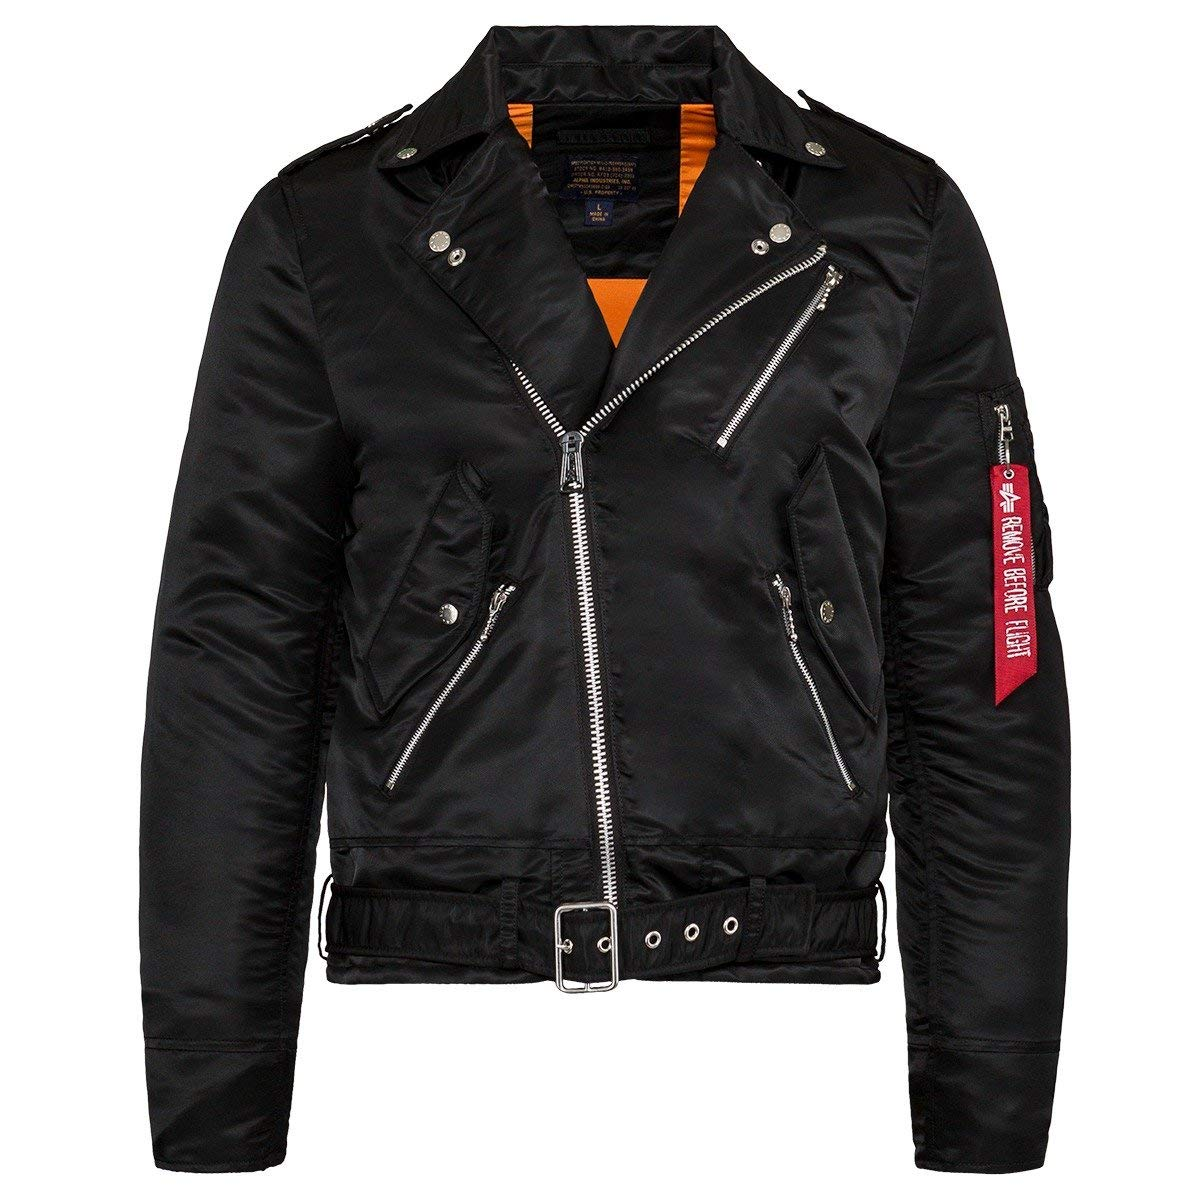 Amazon.com: Alpha Industries para hombre Outlaw Biker ...